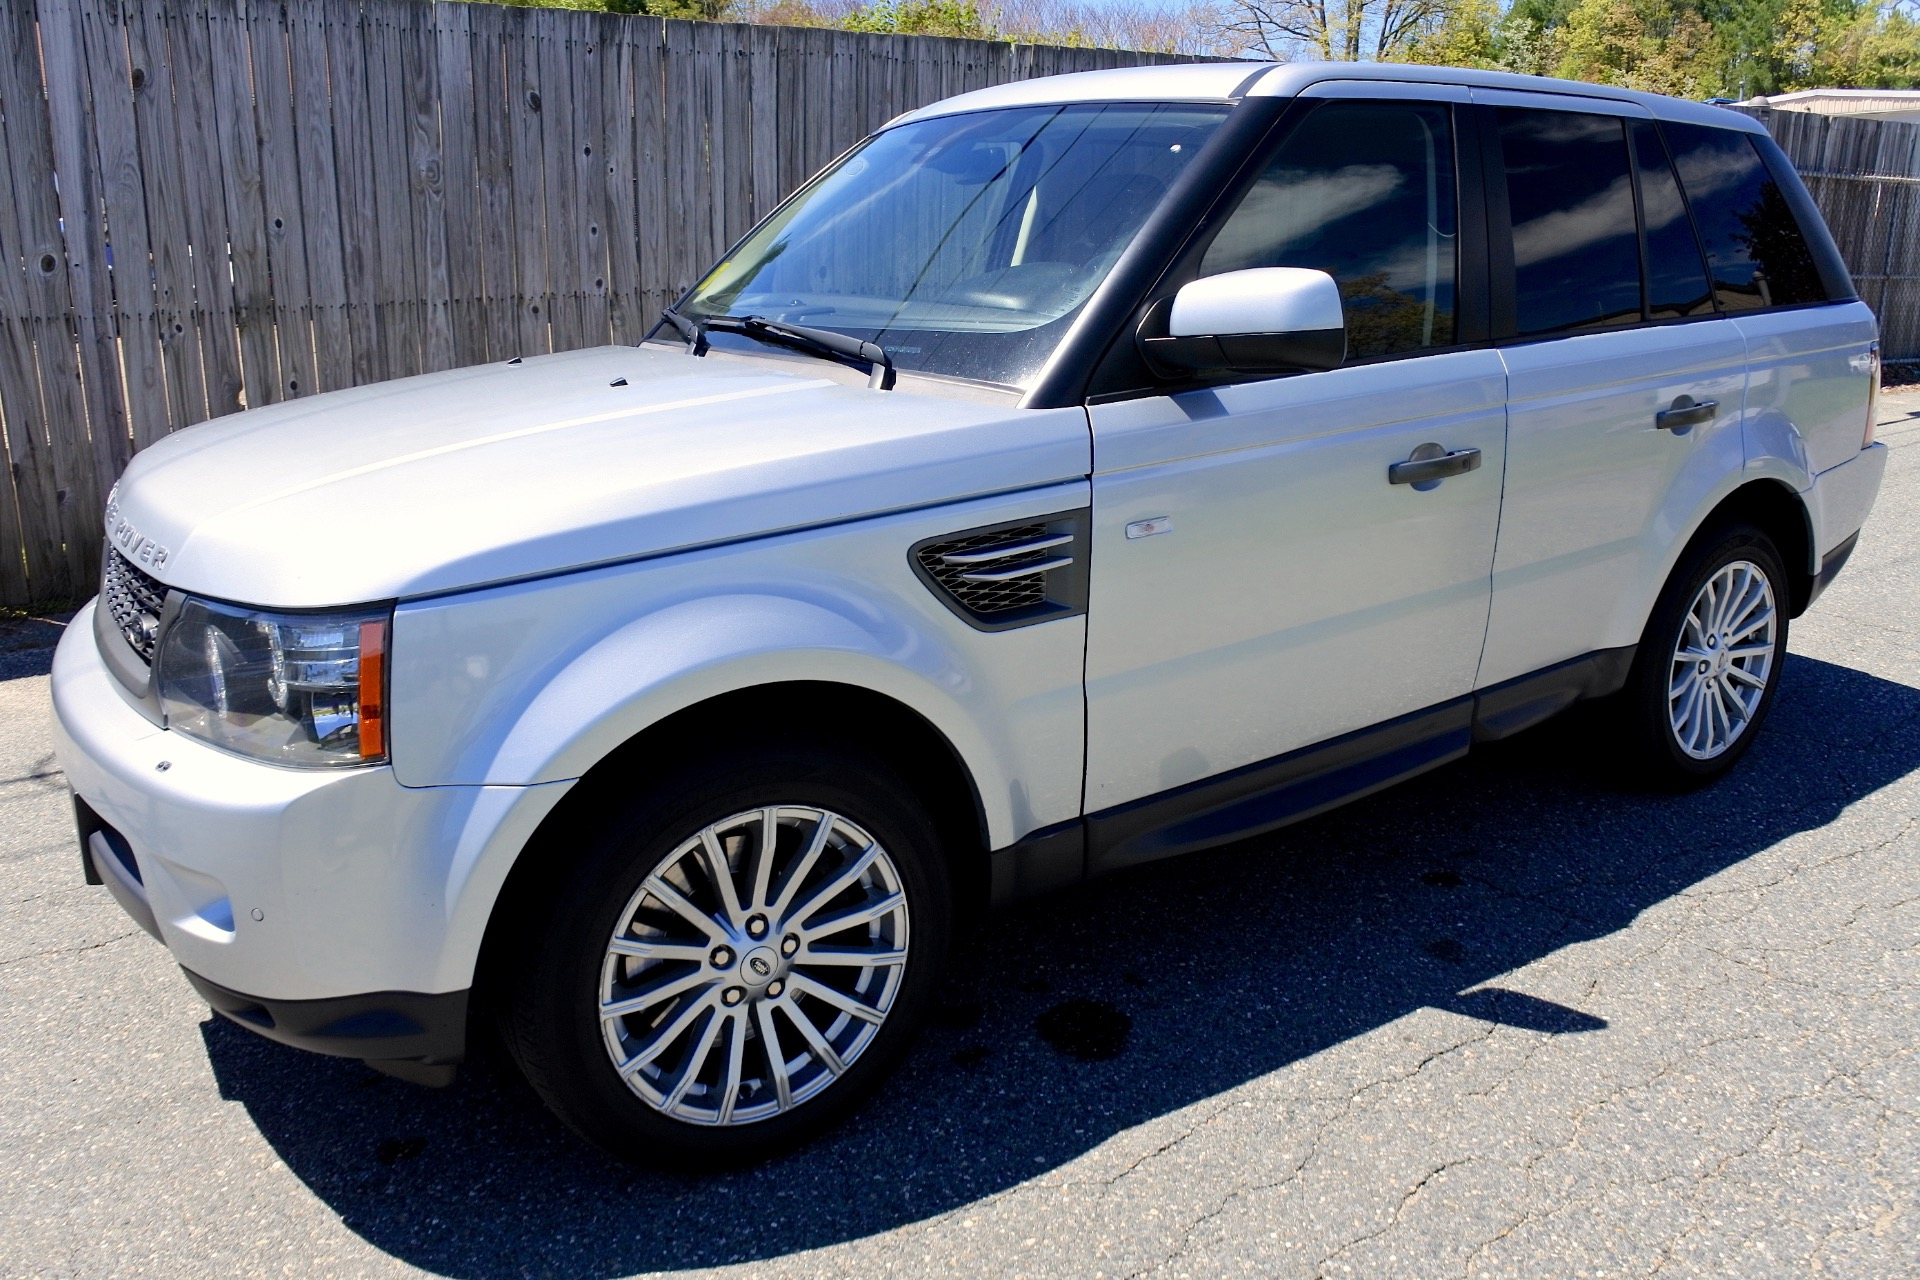 Used 2011 Land Rover Range Rover Sport HSE Used 2011 Land Rover Range Rover Sport HSE for sale  at Metro West Motorcars LLC in Shrewsbury MA 1